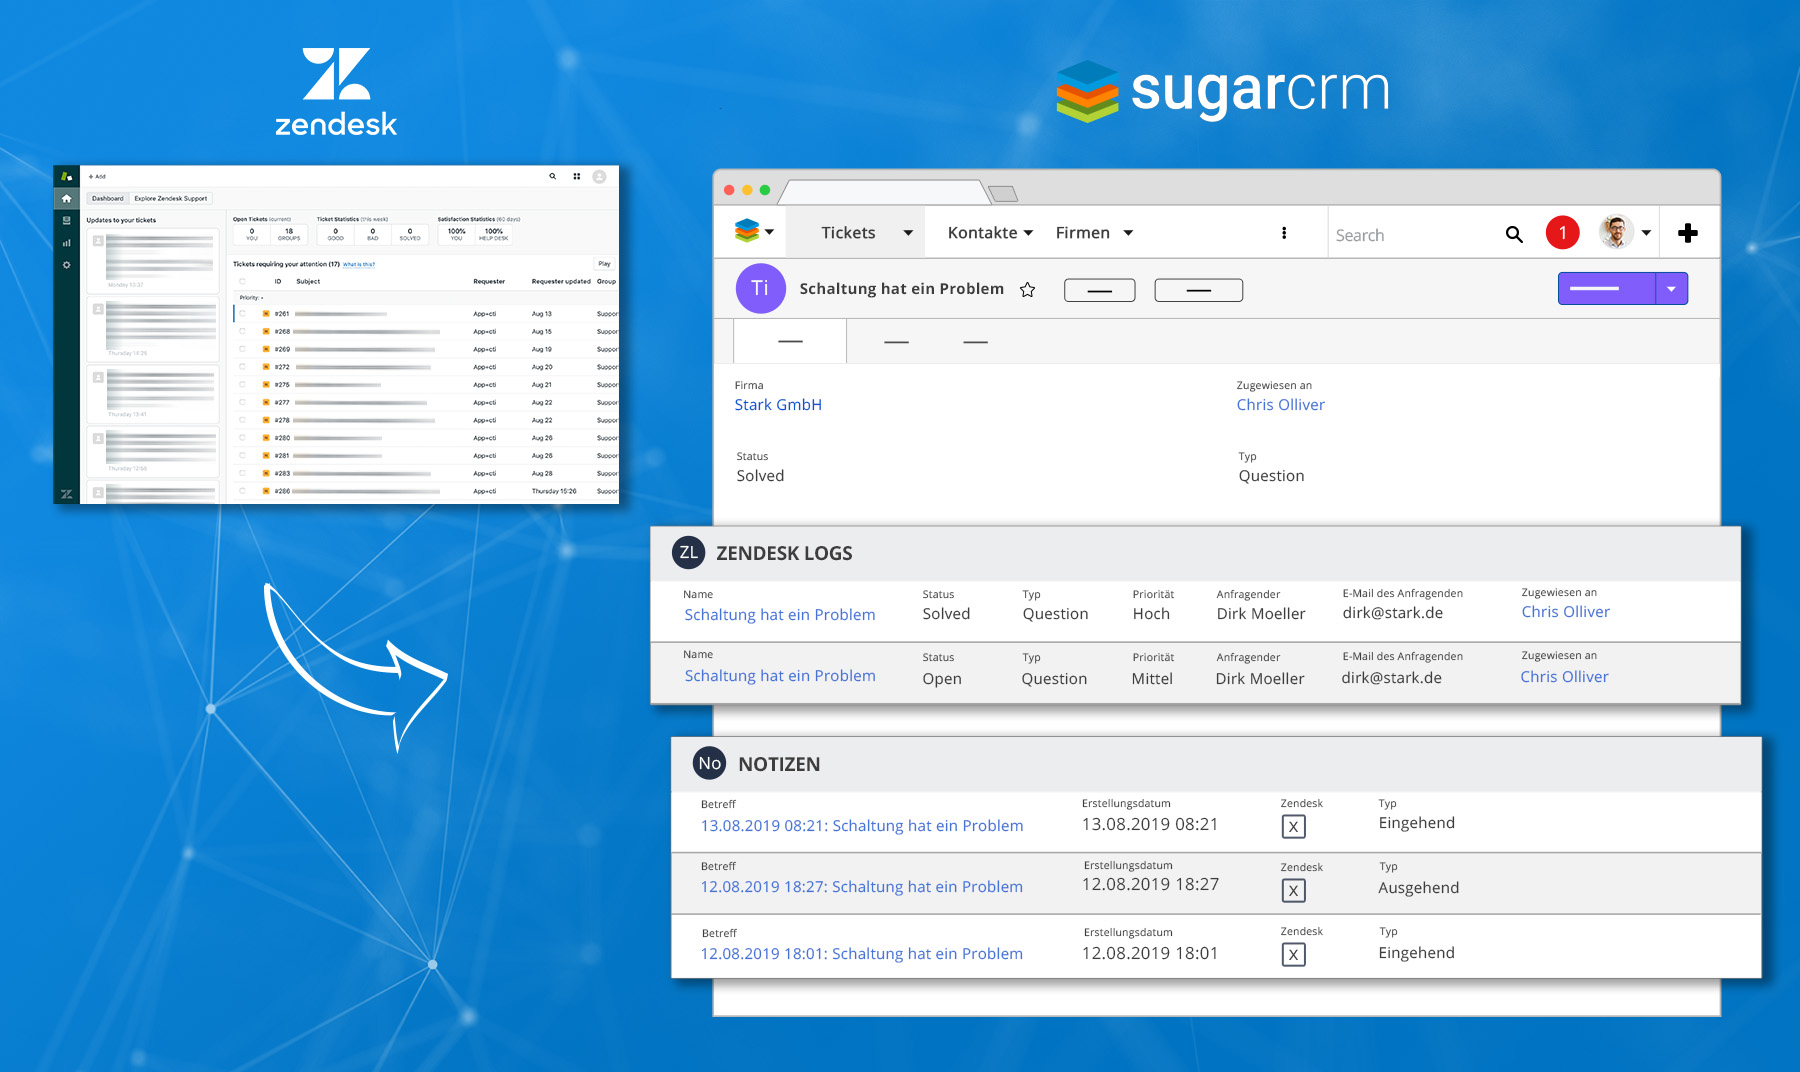 Zendesk to SugarCRM Integration Showcase